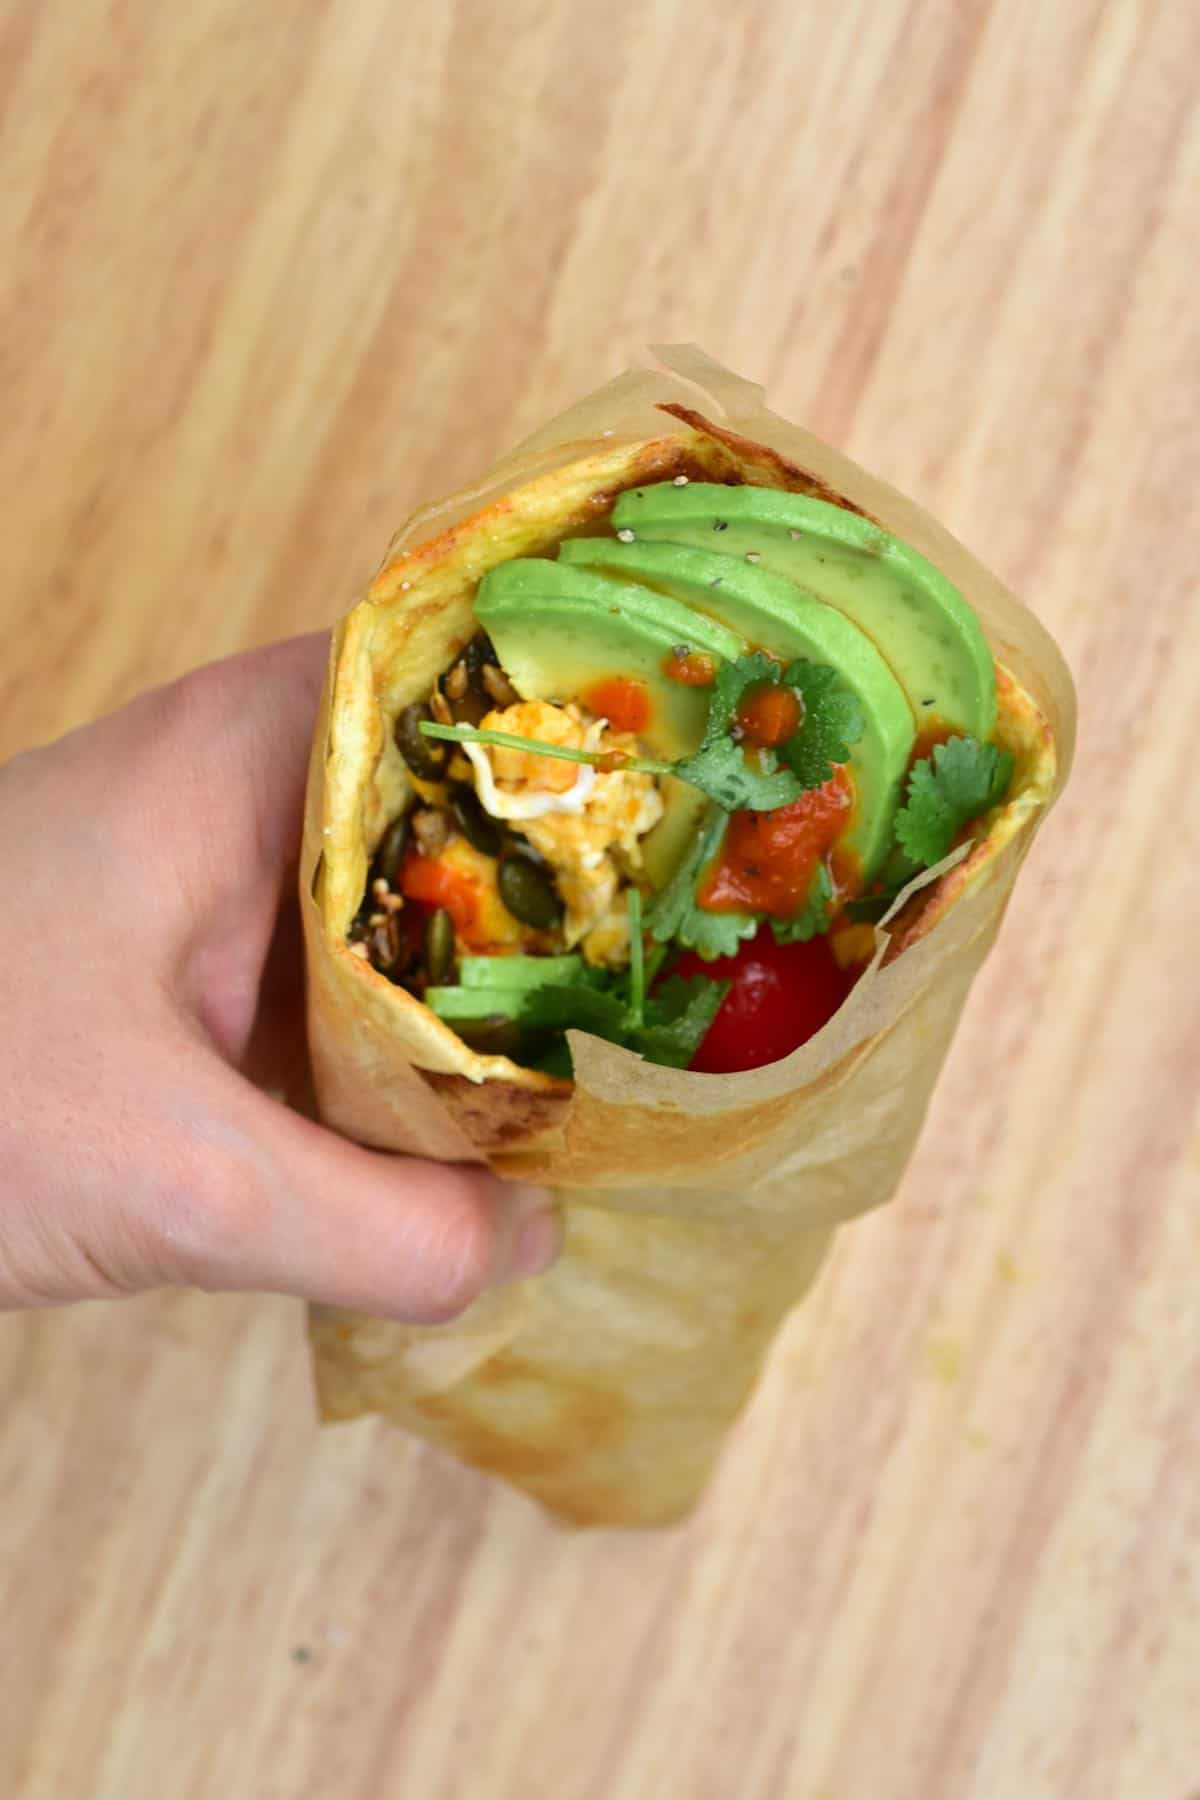 Potato flatbread wrapped with avocado and other ingredients